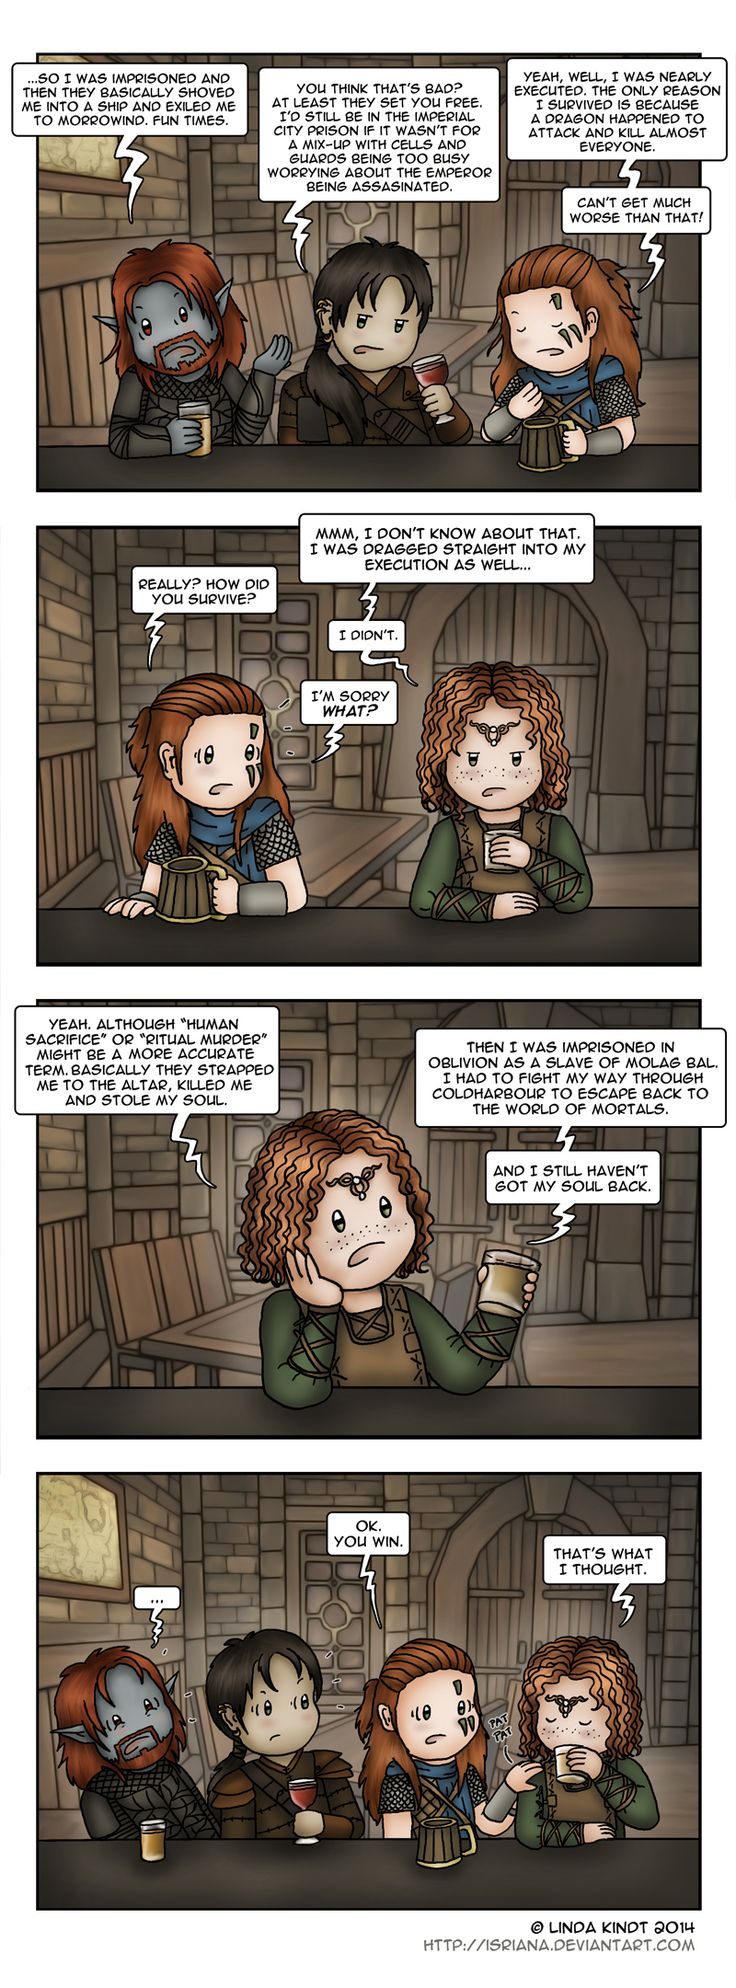 TESO: Keeps Getting Worse by Isriana on DeviantArt - Morrowind, Oblivion, Skyrim and now Elder Scrolls Online. XD